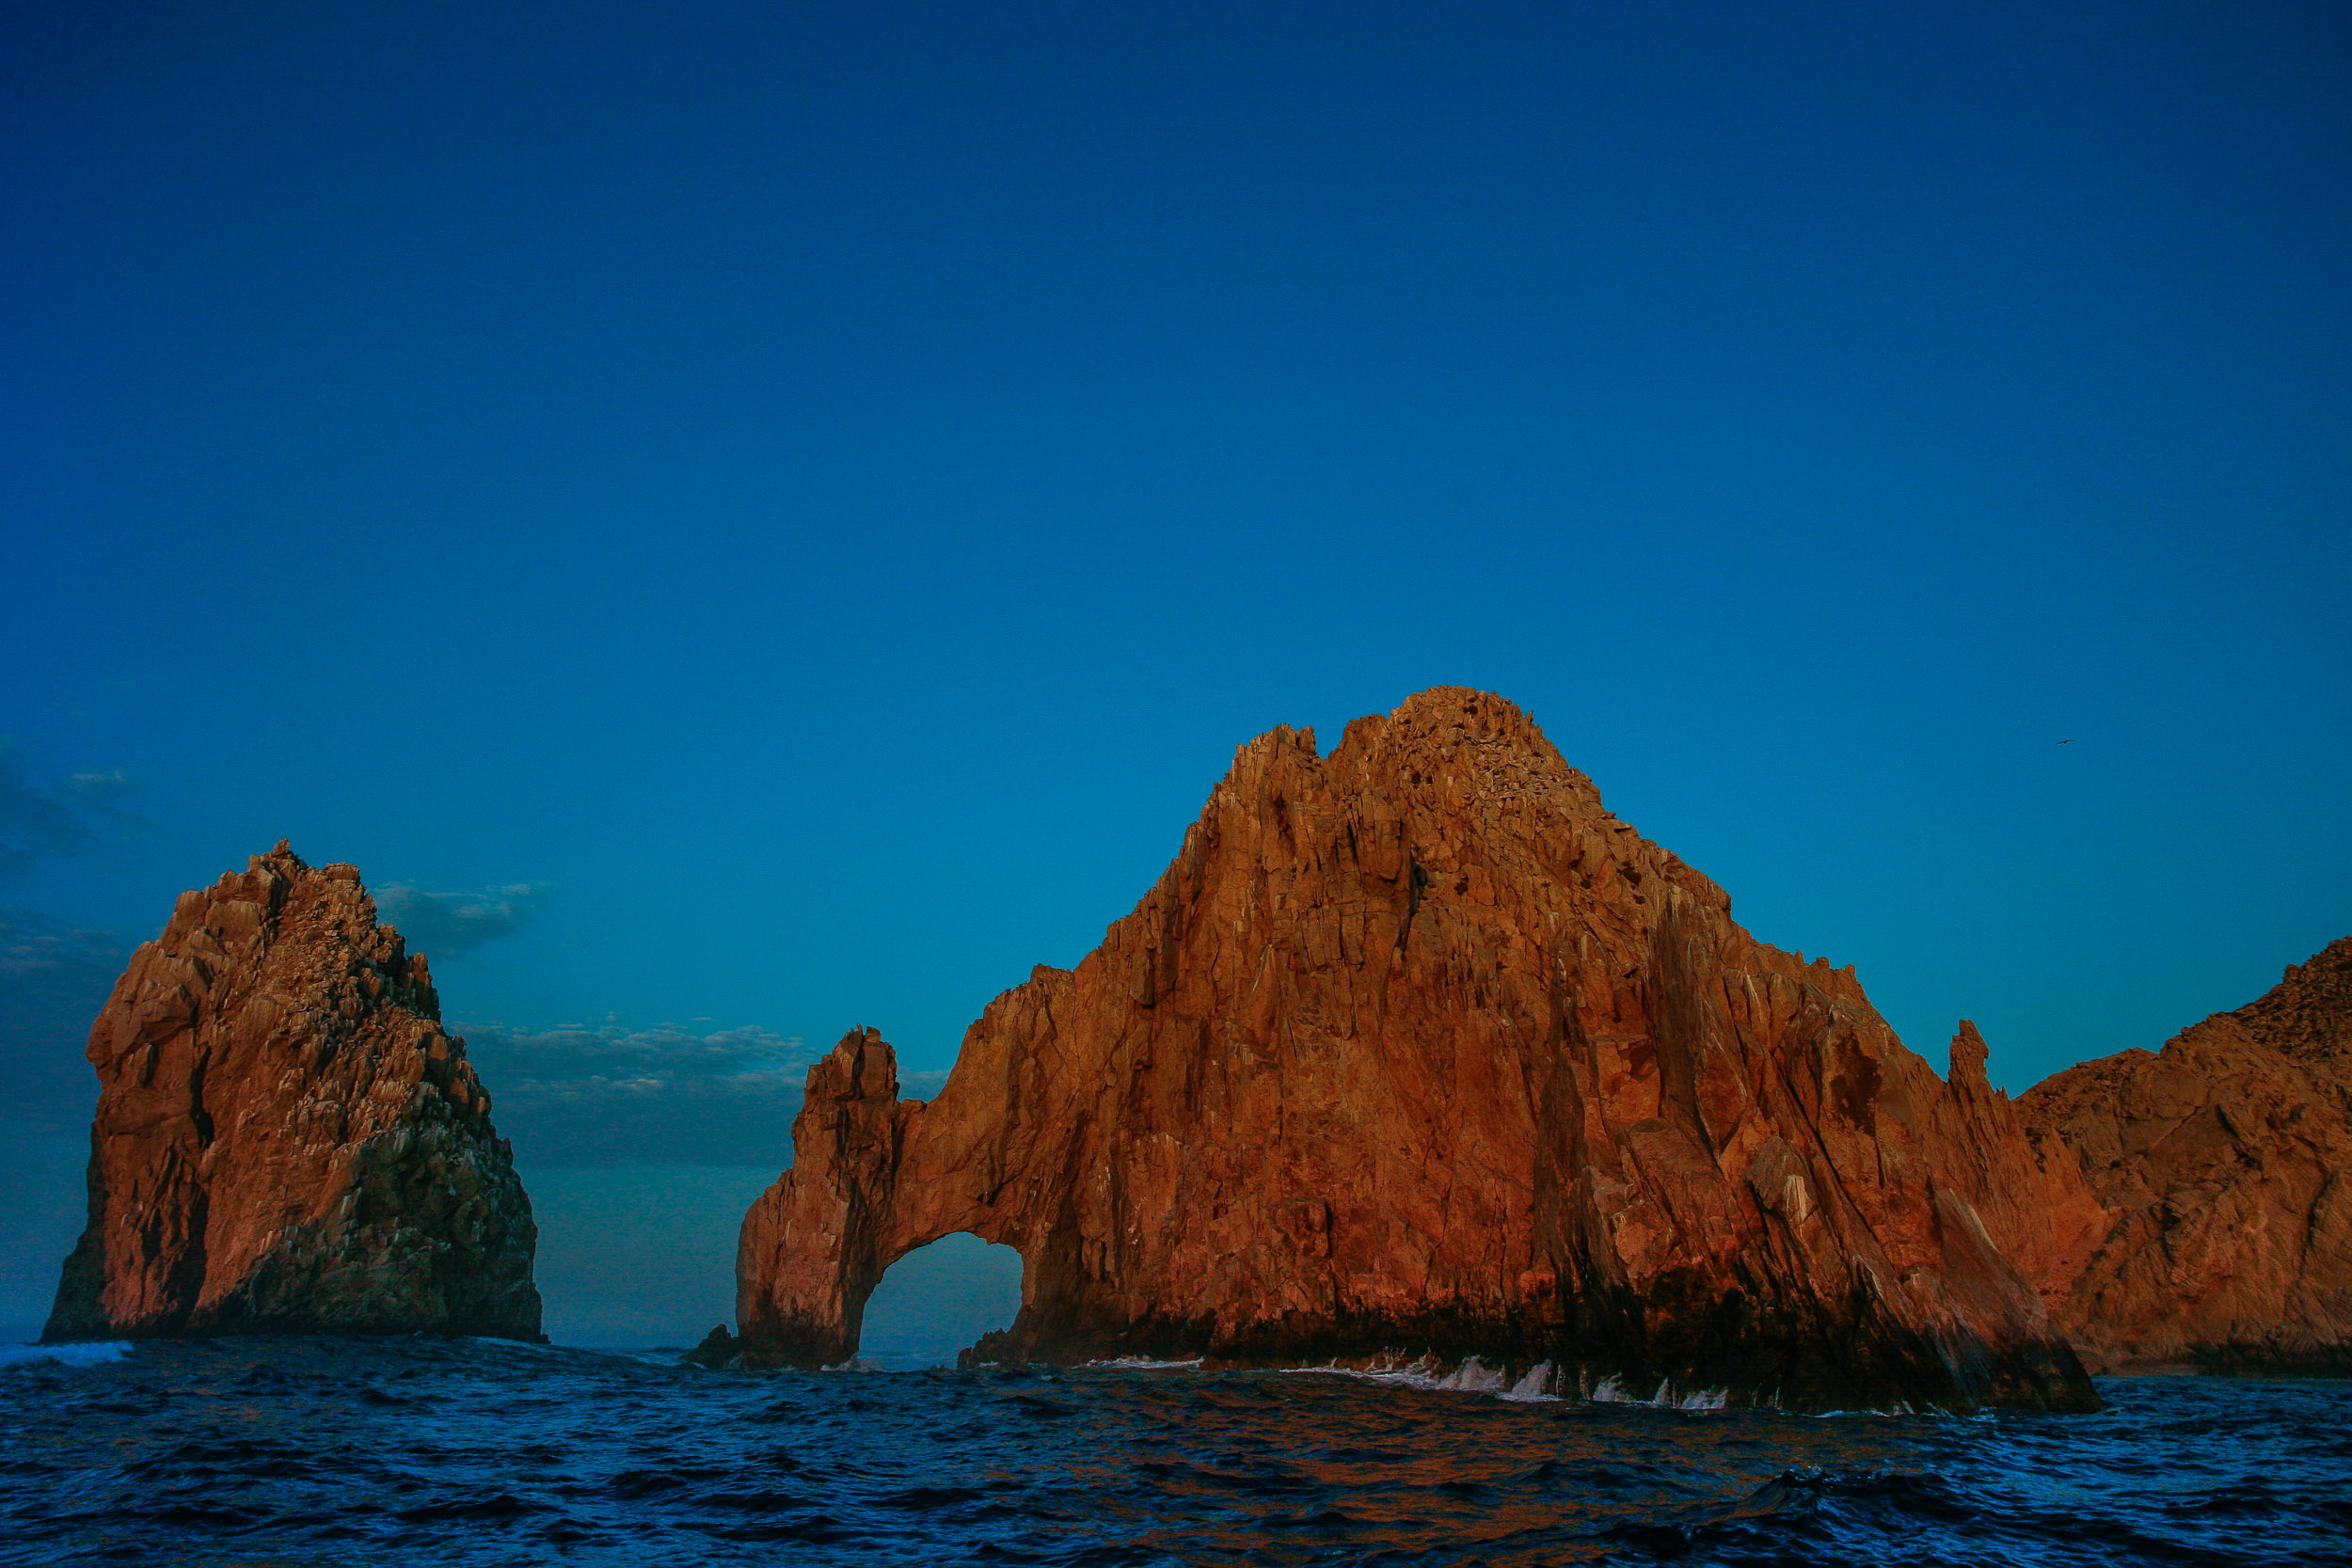 Cabo San Lucas shoreline, Steven Martine, travel and tourism photographer